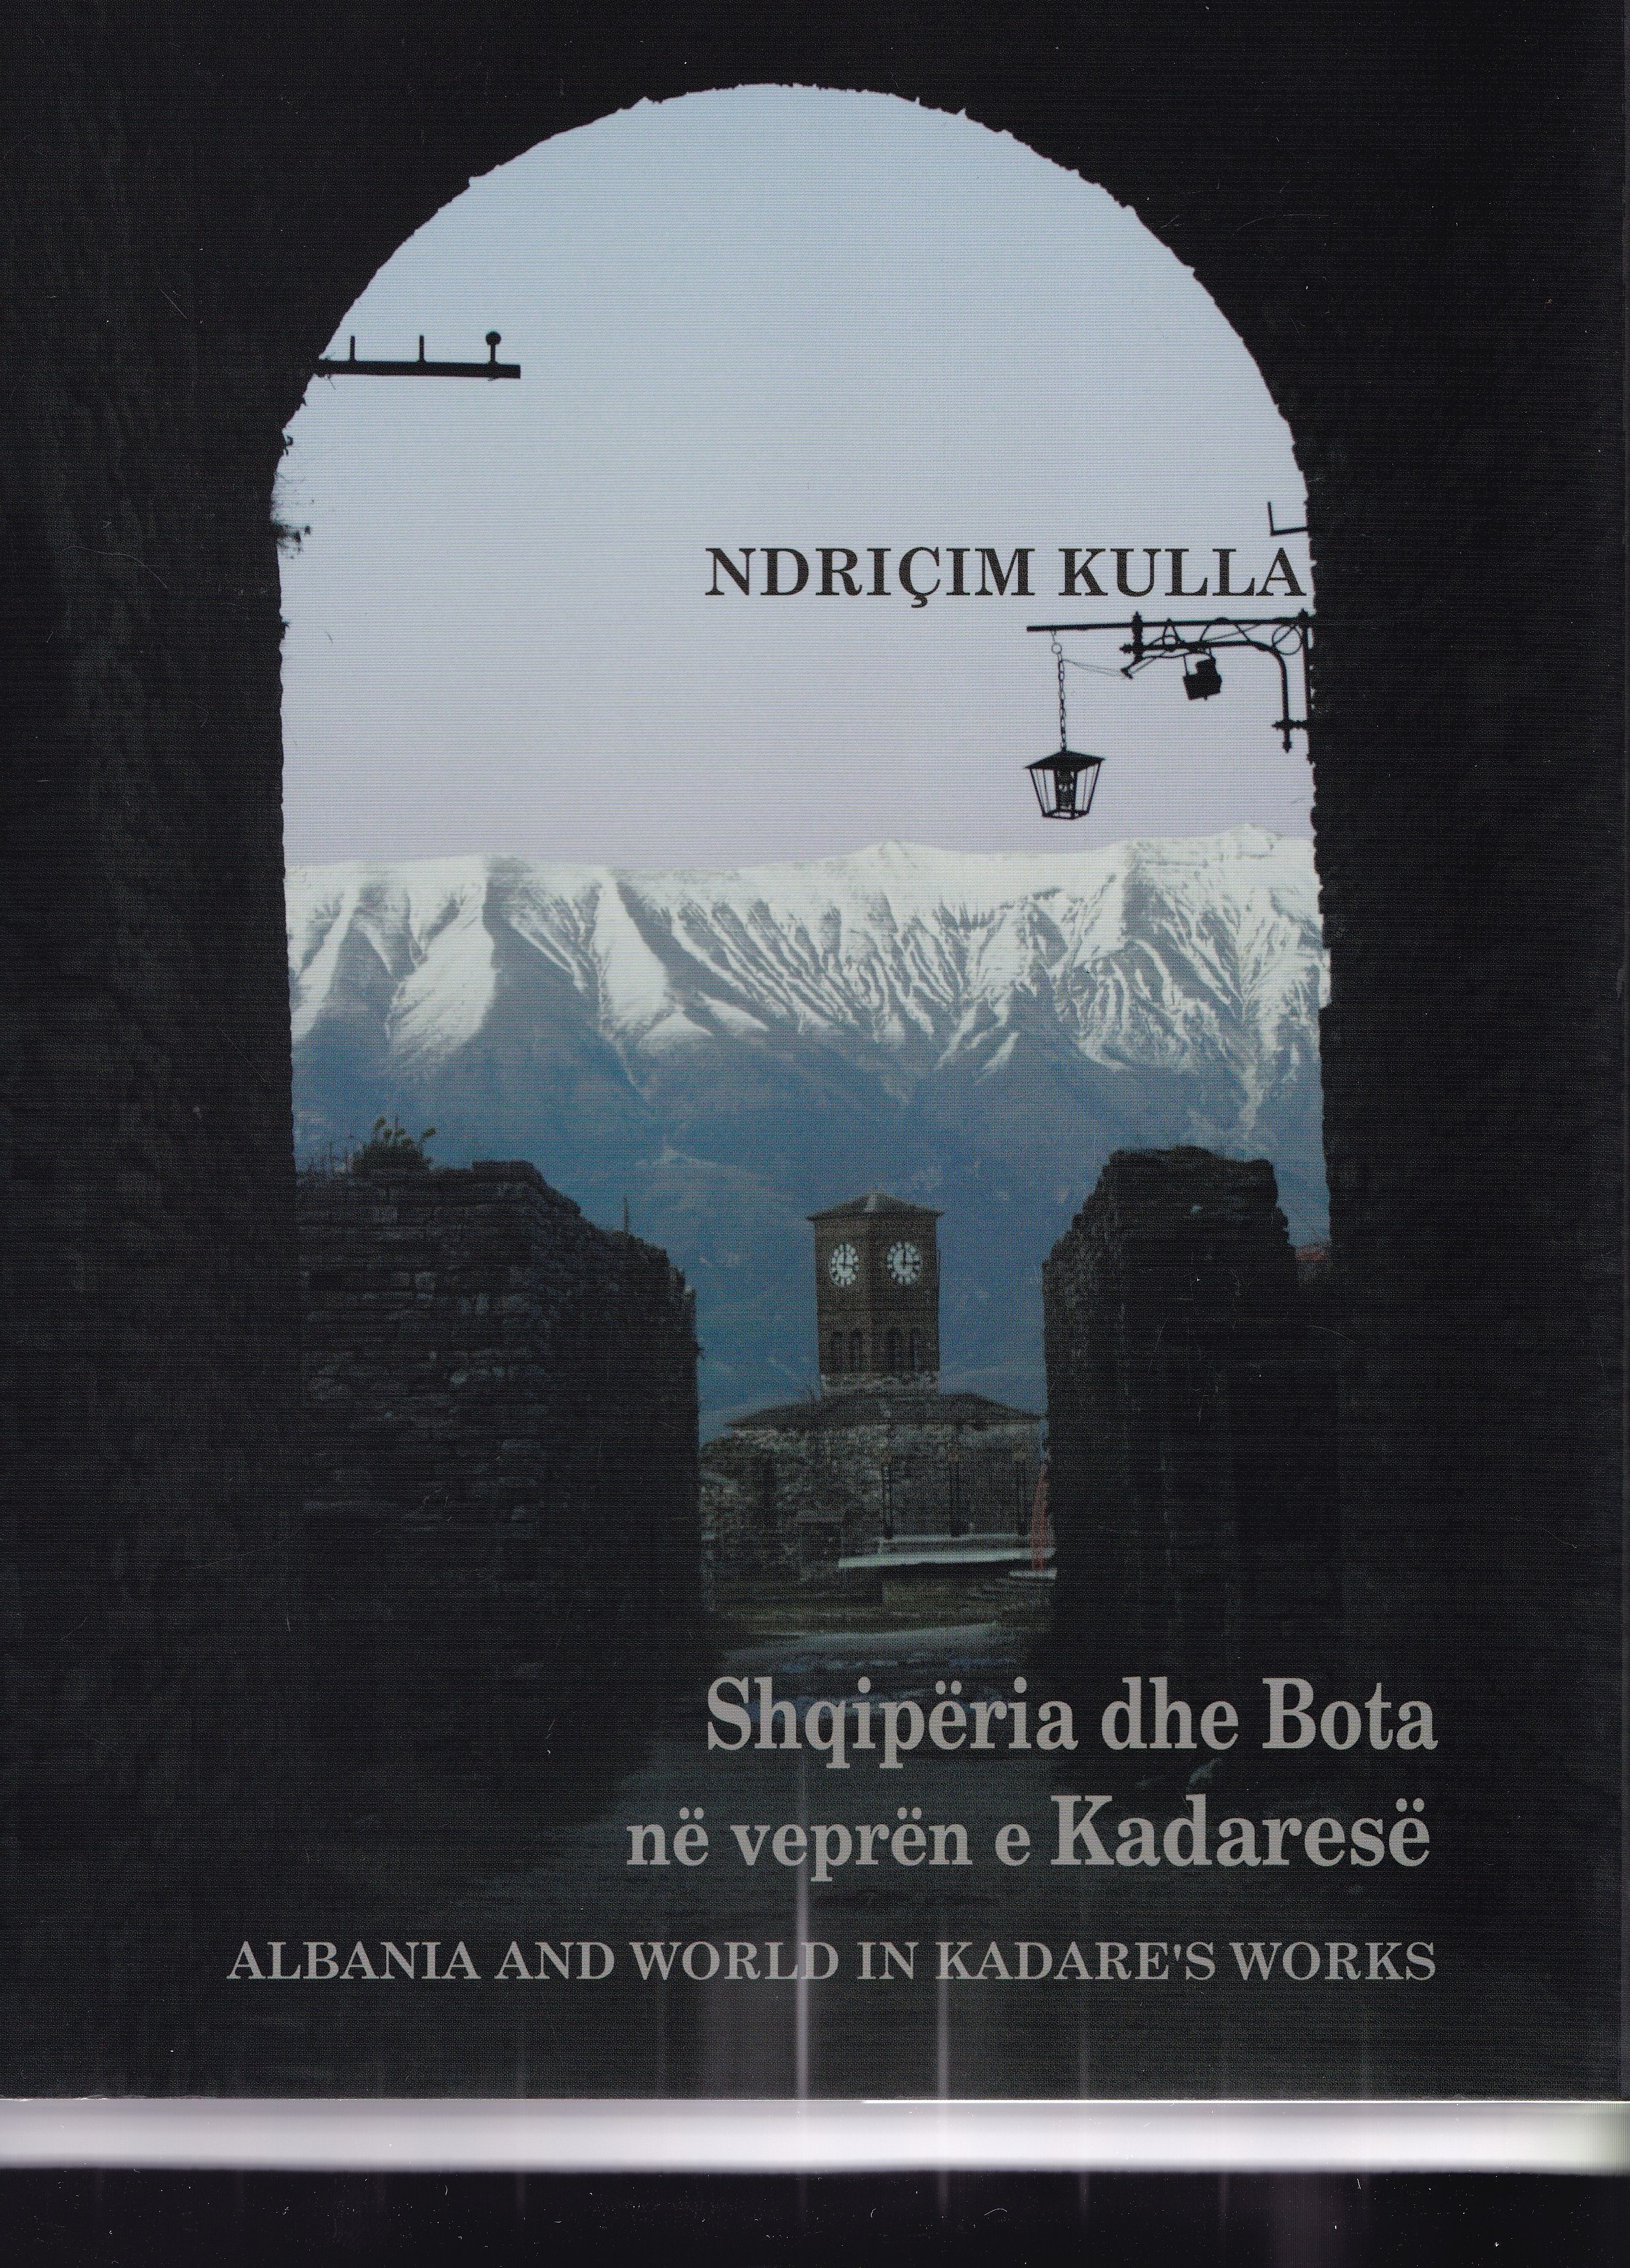 Albania and world in Kadare's works